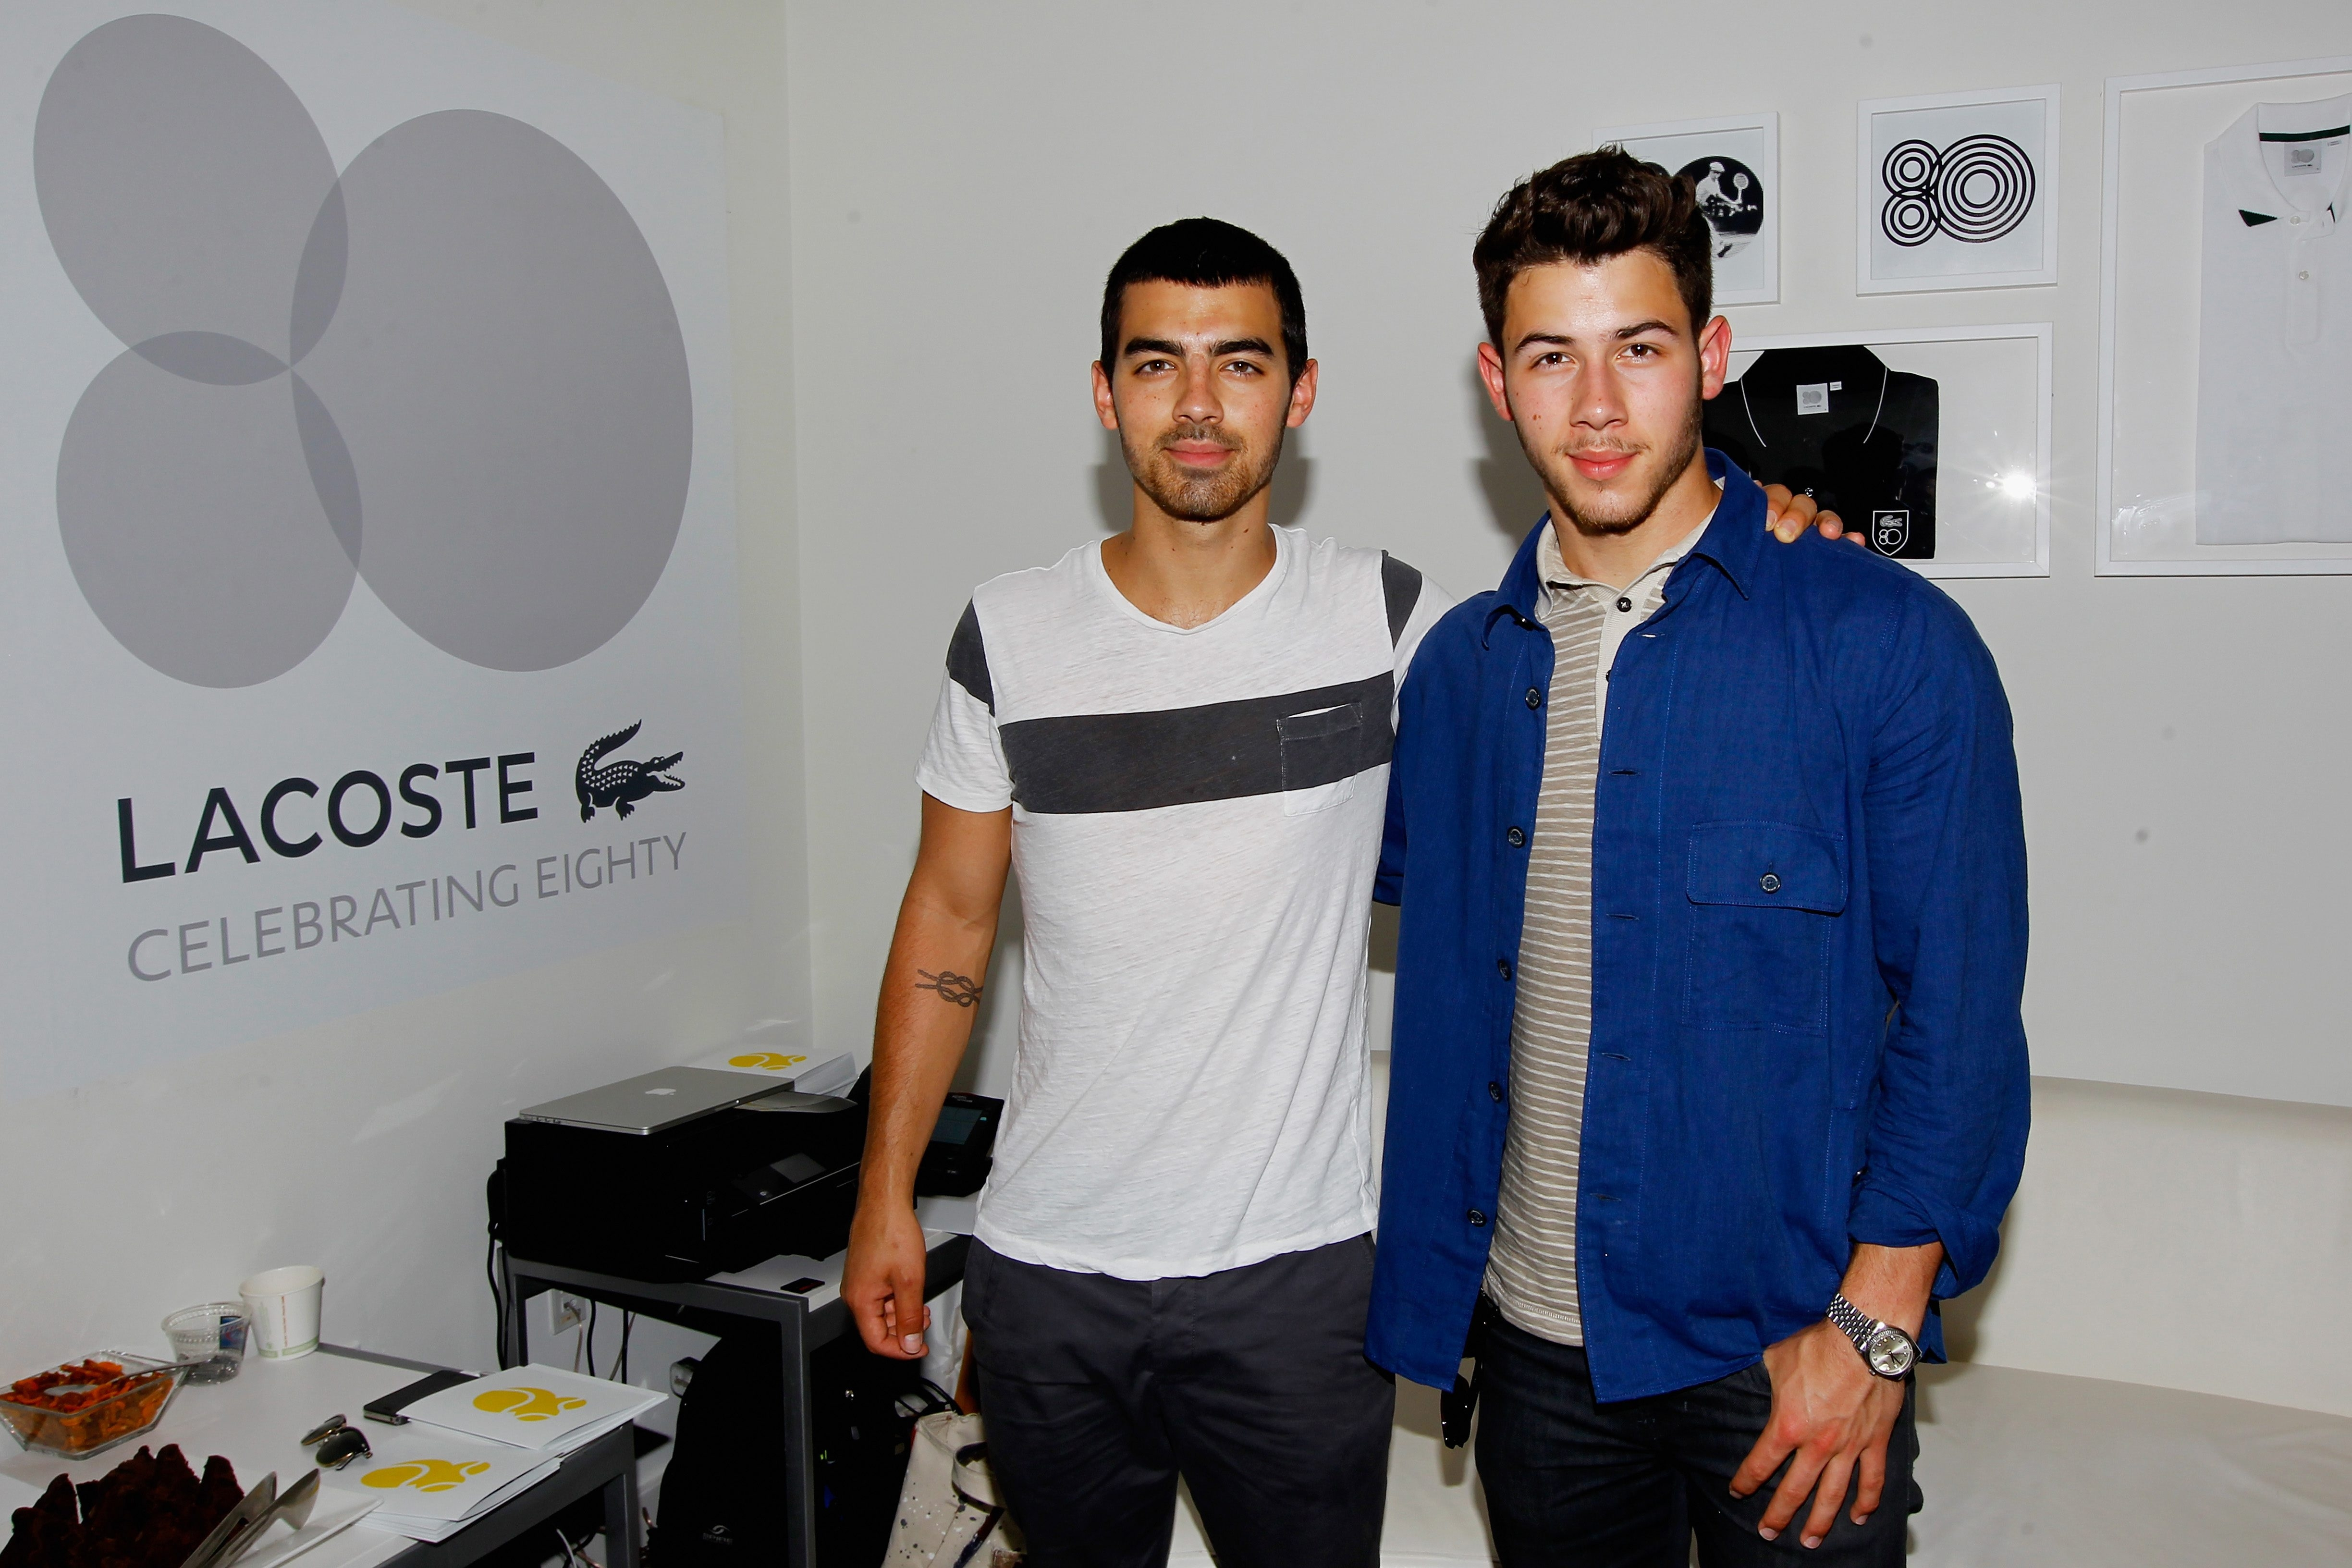 NEW YORK, NY – SEPTEMBER 03:  (L-R) Musicians Joe Jonas and Nick Jonas of of The Jonas Brothers attend Day Nine of the 2013 US Open at the USTA Billie Jean King National Tennis Center on September 3, 2013 in New York City.  (Photo by Jaime L. Mikle/Getty Images for the USTA)